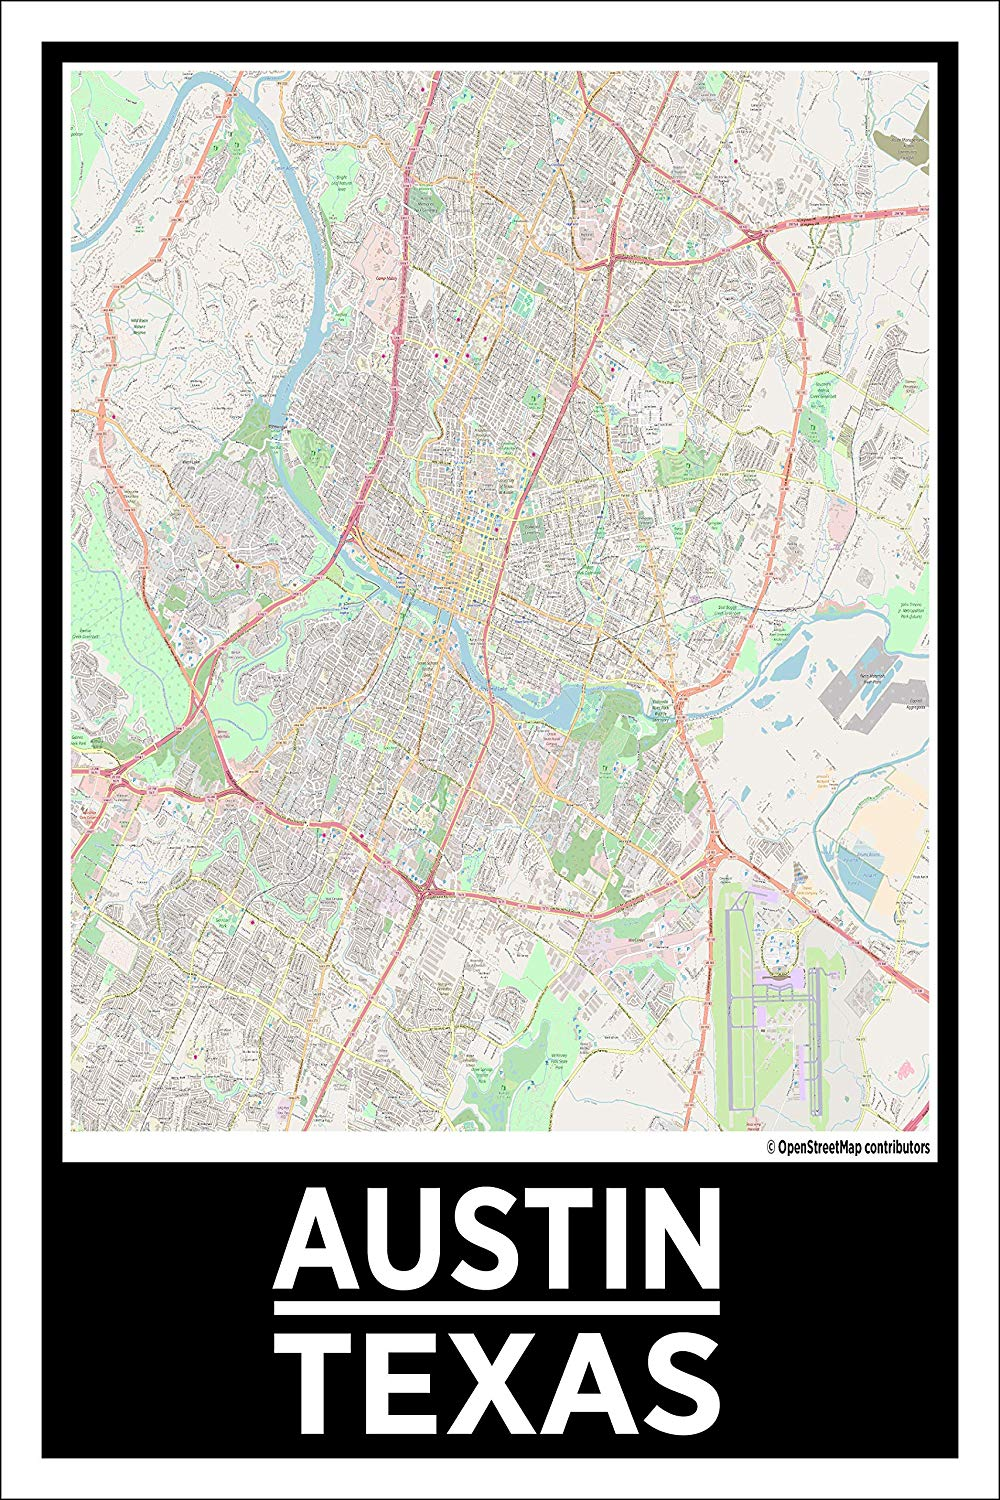 Spitzy's Austin Texas City Map 12 x 18 inch Poster - Home Wall Art for Your Home Bedroom, Office, or Dorm Room - Great Gift Idea to Men and Women